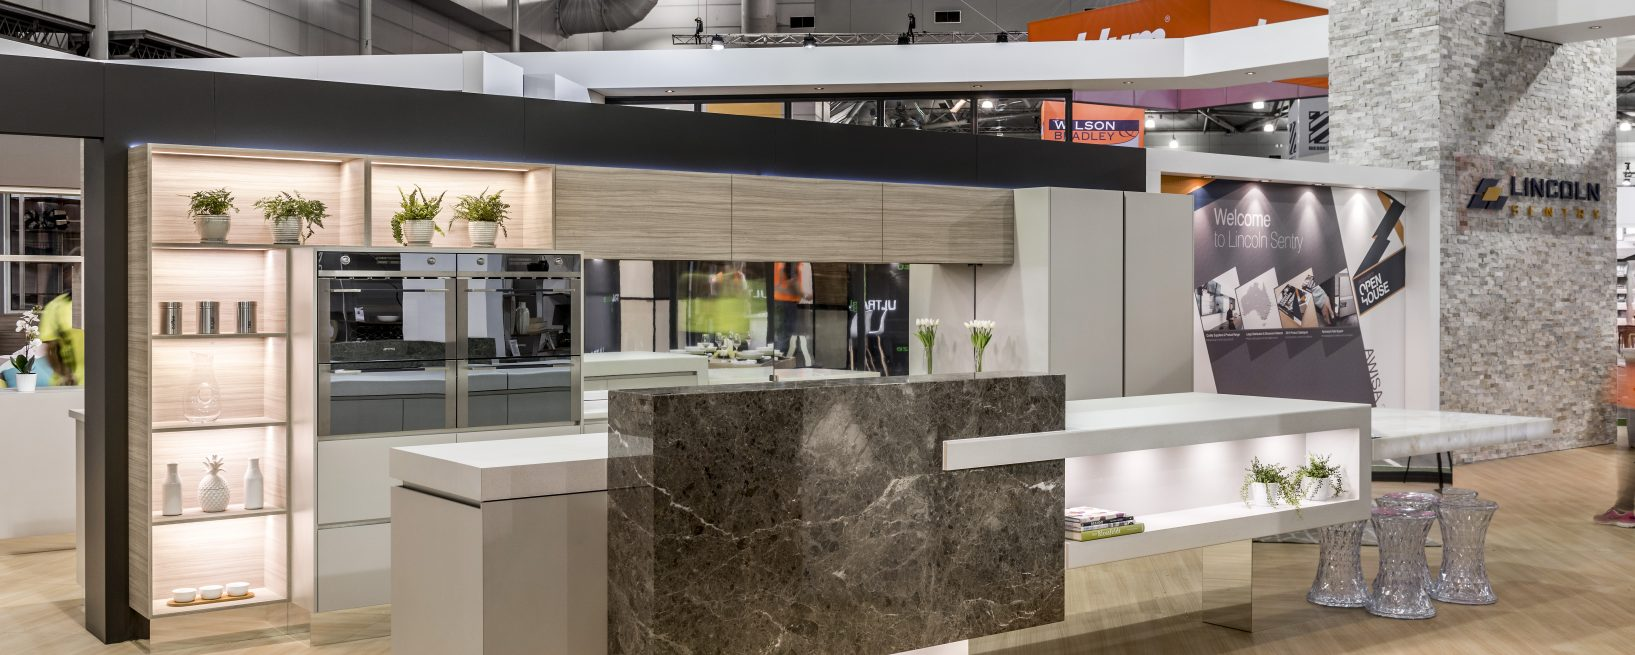 lincoln senty awisa stand 2014 sublime architectural interiors